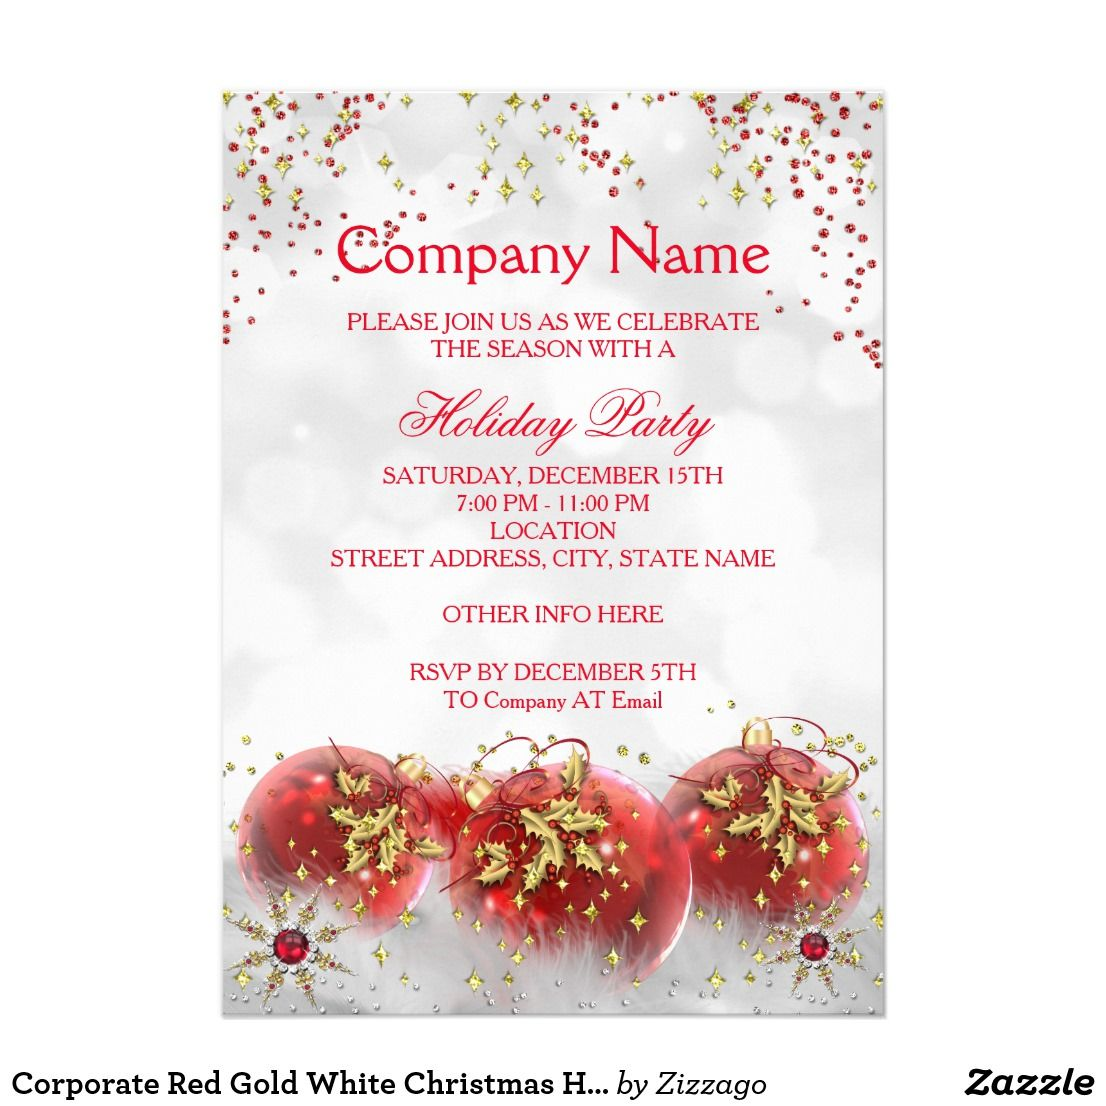 Corporate Red Gold White Christmas Holiday Party Card Corporate